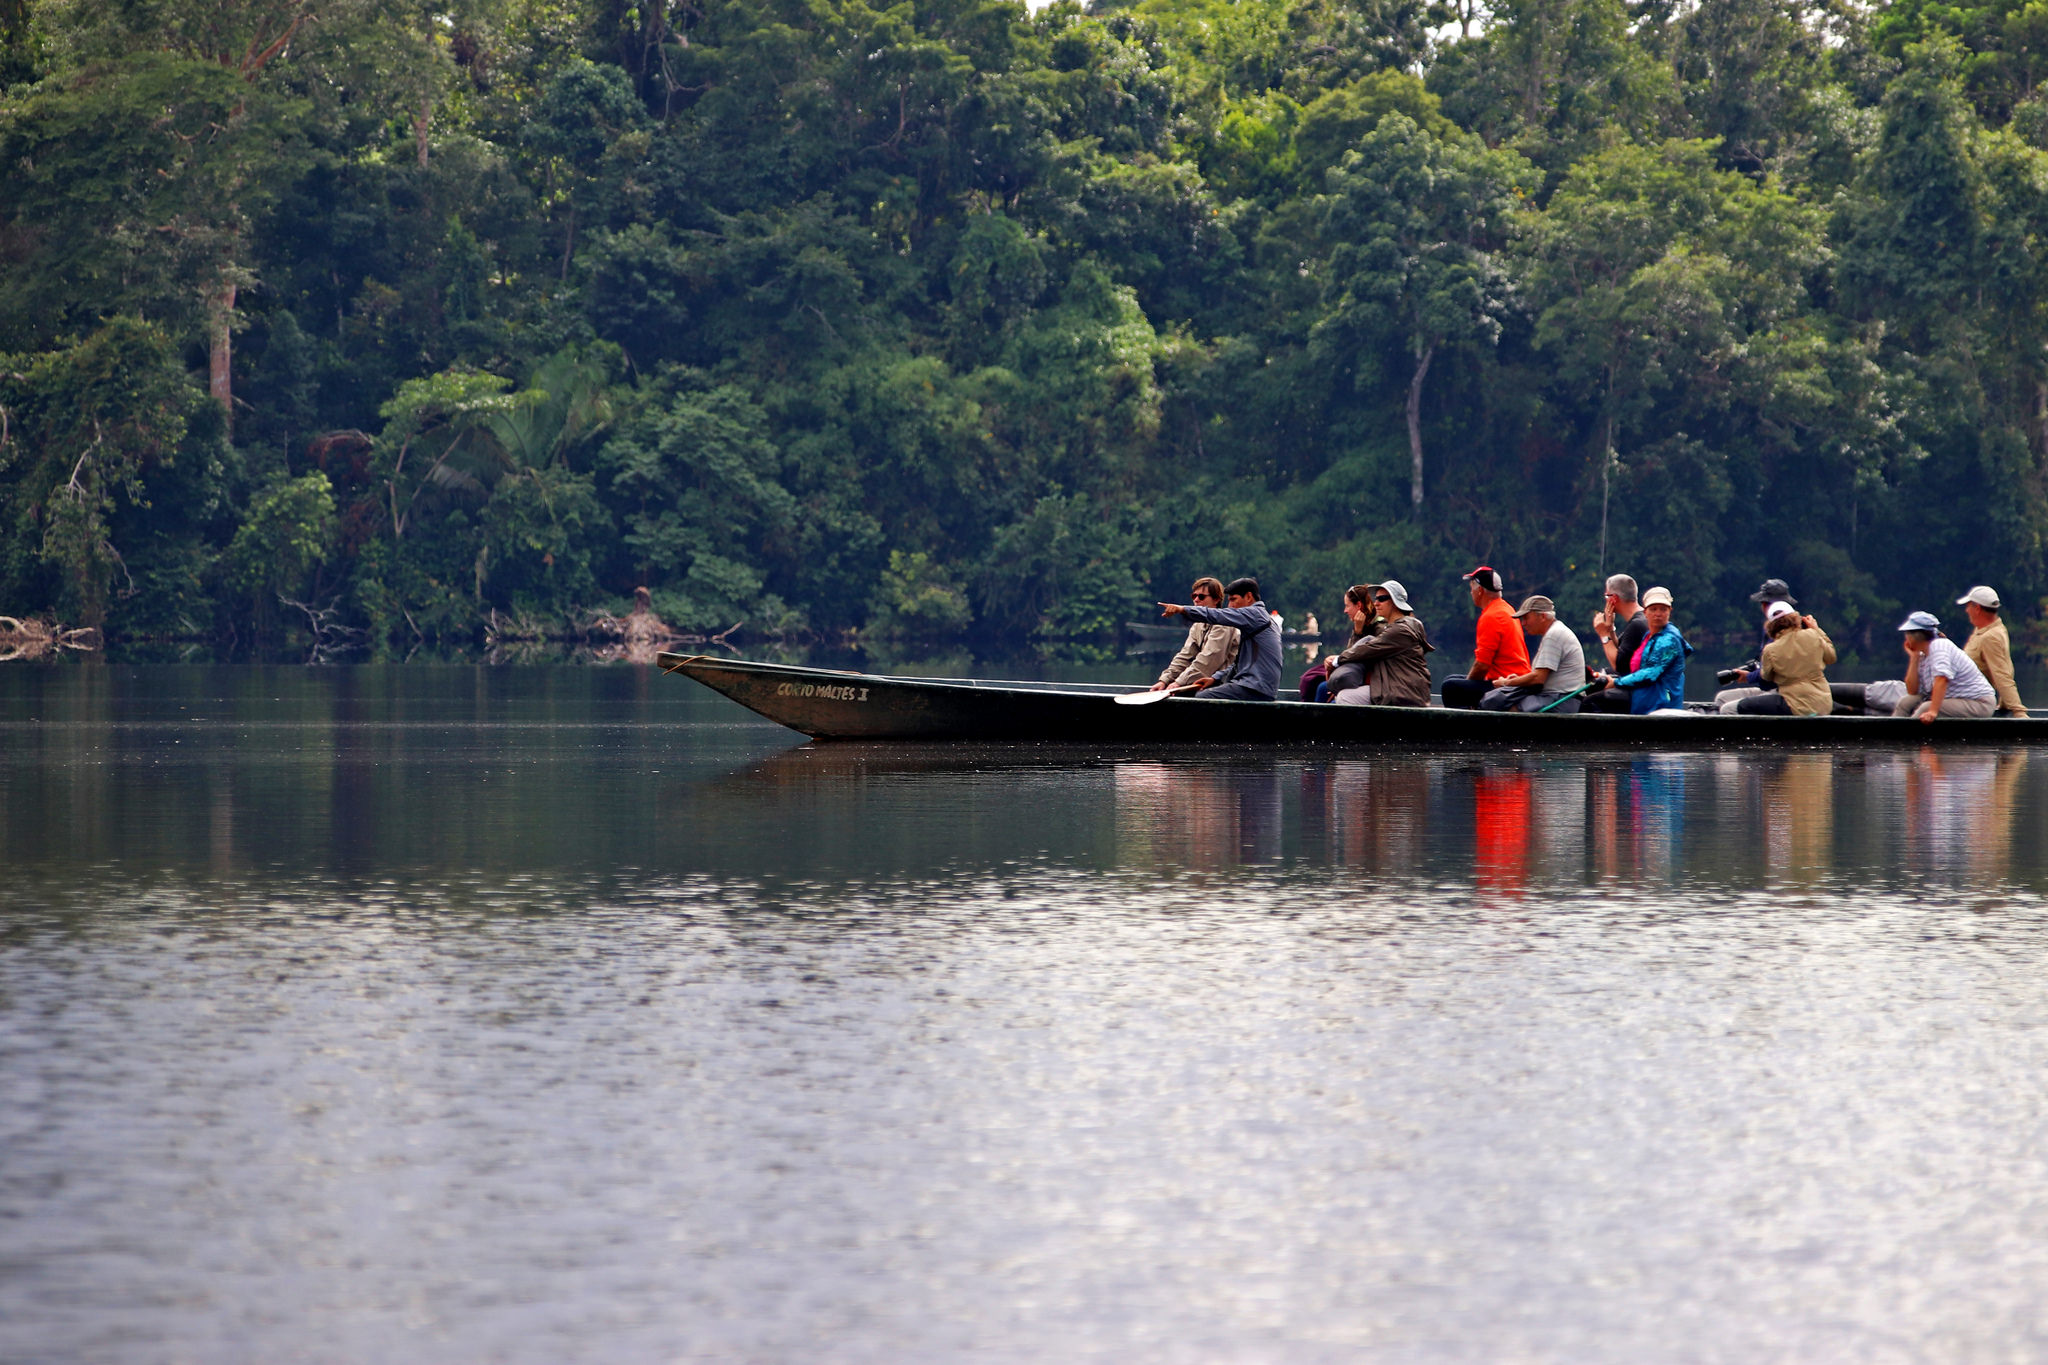 <p>Rowing across a lake in Peru\'s Amazon. Flickr/WRI</p>